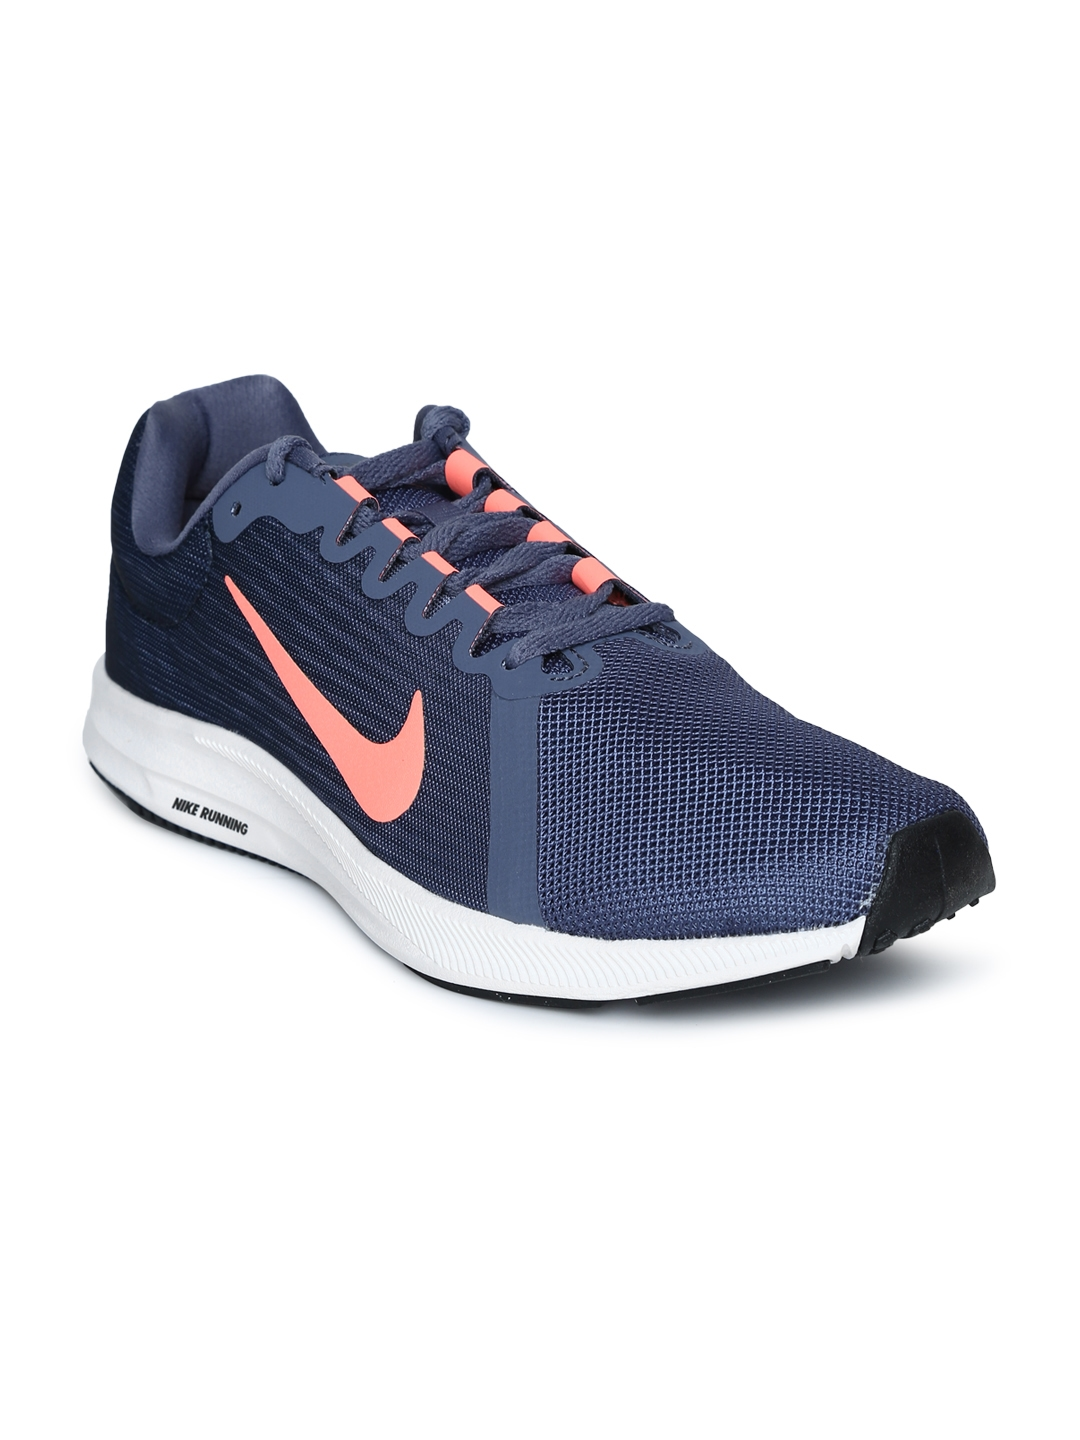 low priced 0d653 97a81 Nike Women Navy Blue Downshifter 8 Running Shoes